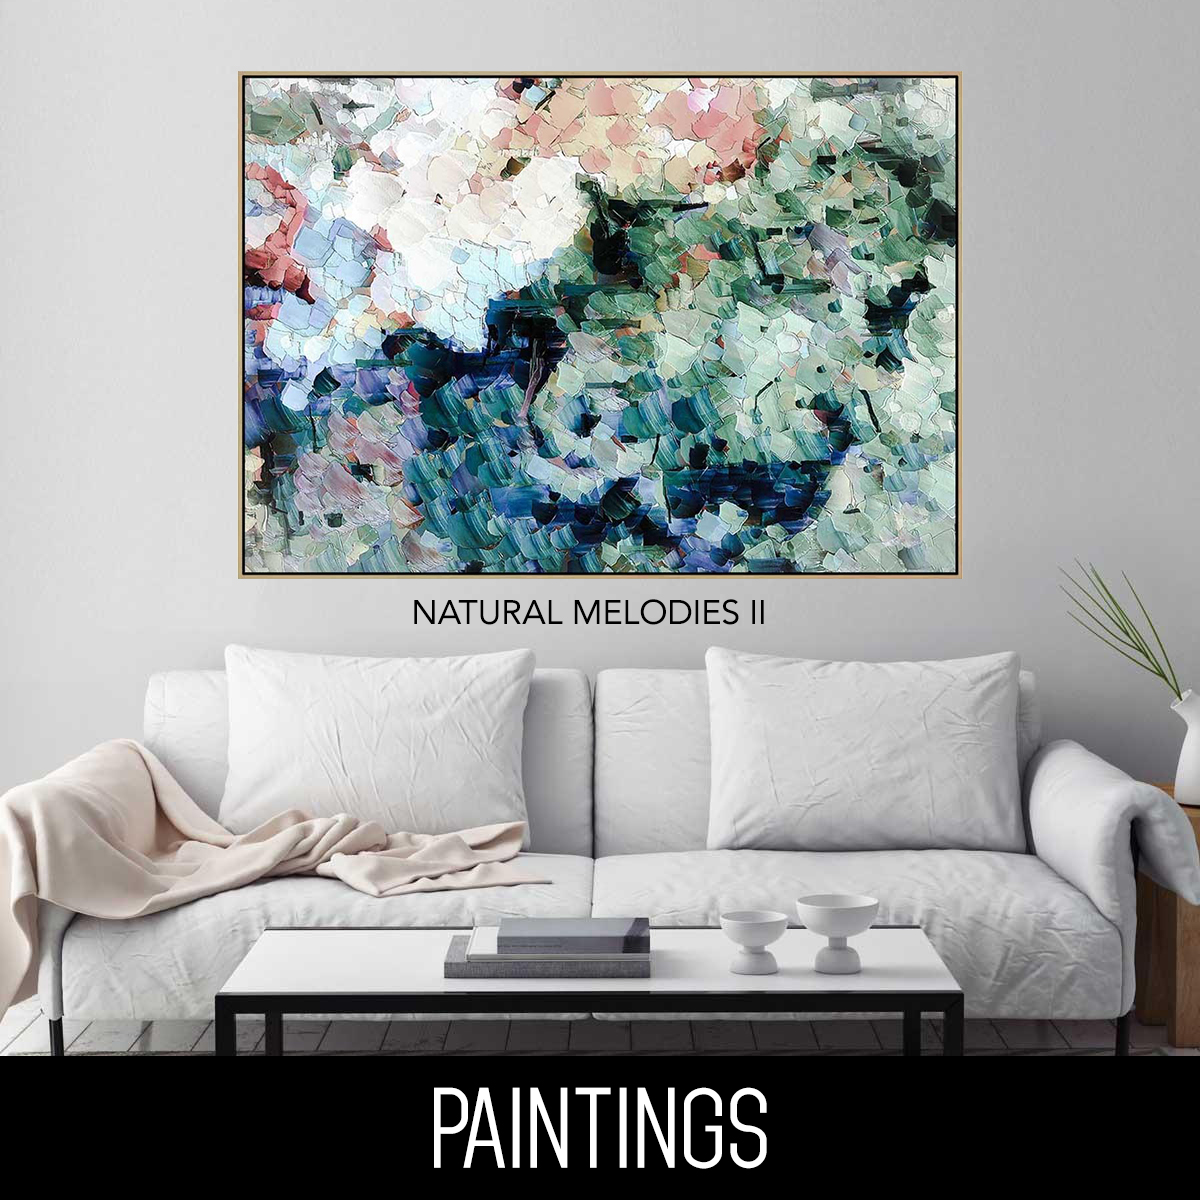 Buy art hand paintings canvas prints wall hangings interiors online australia